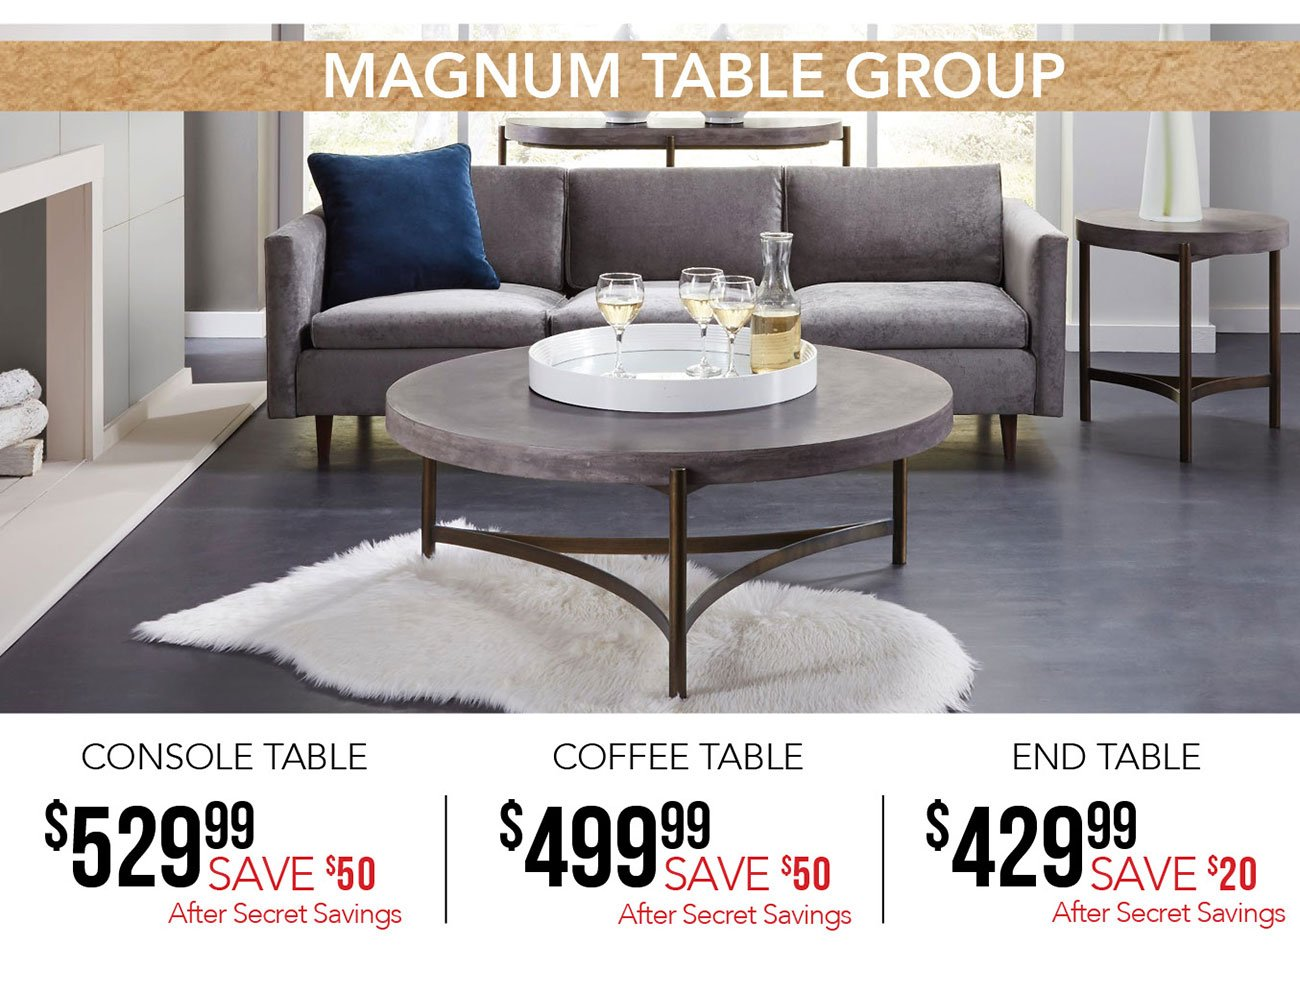 Magnum-table-group